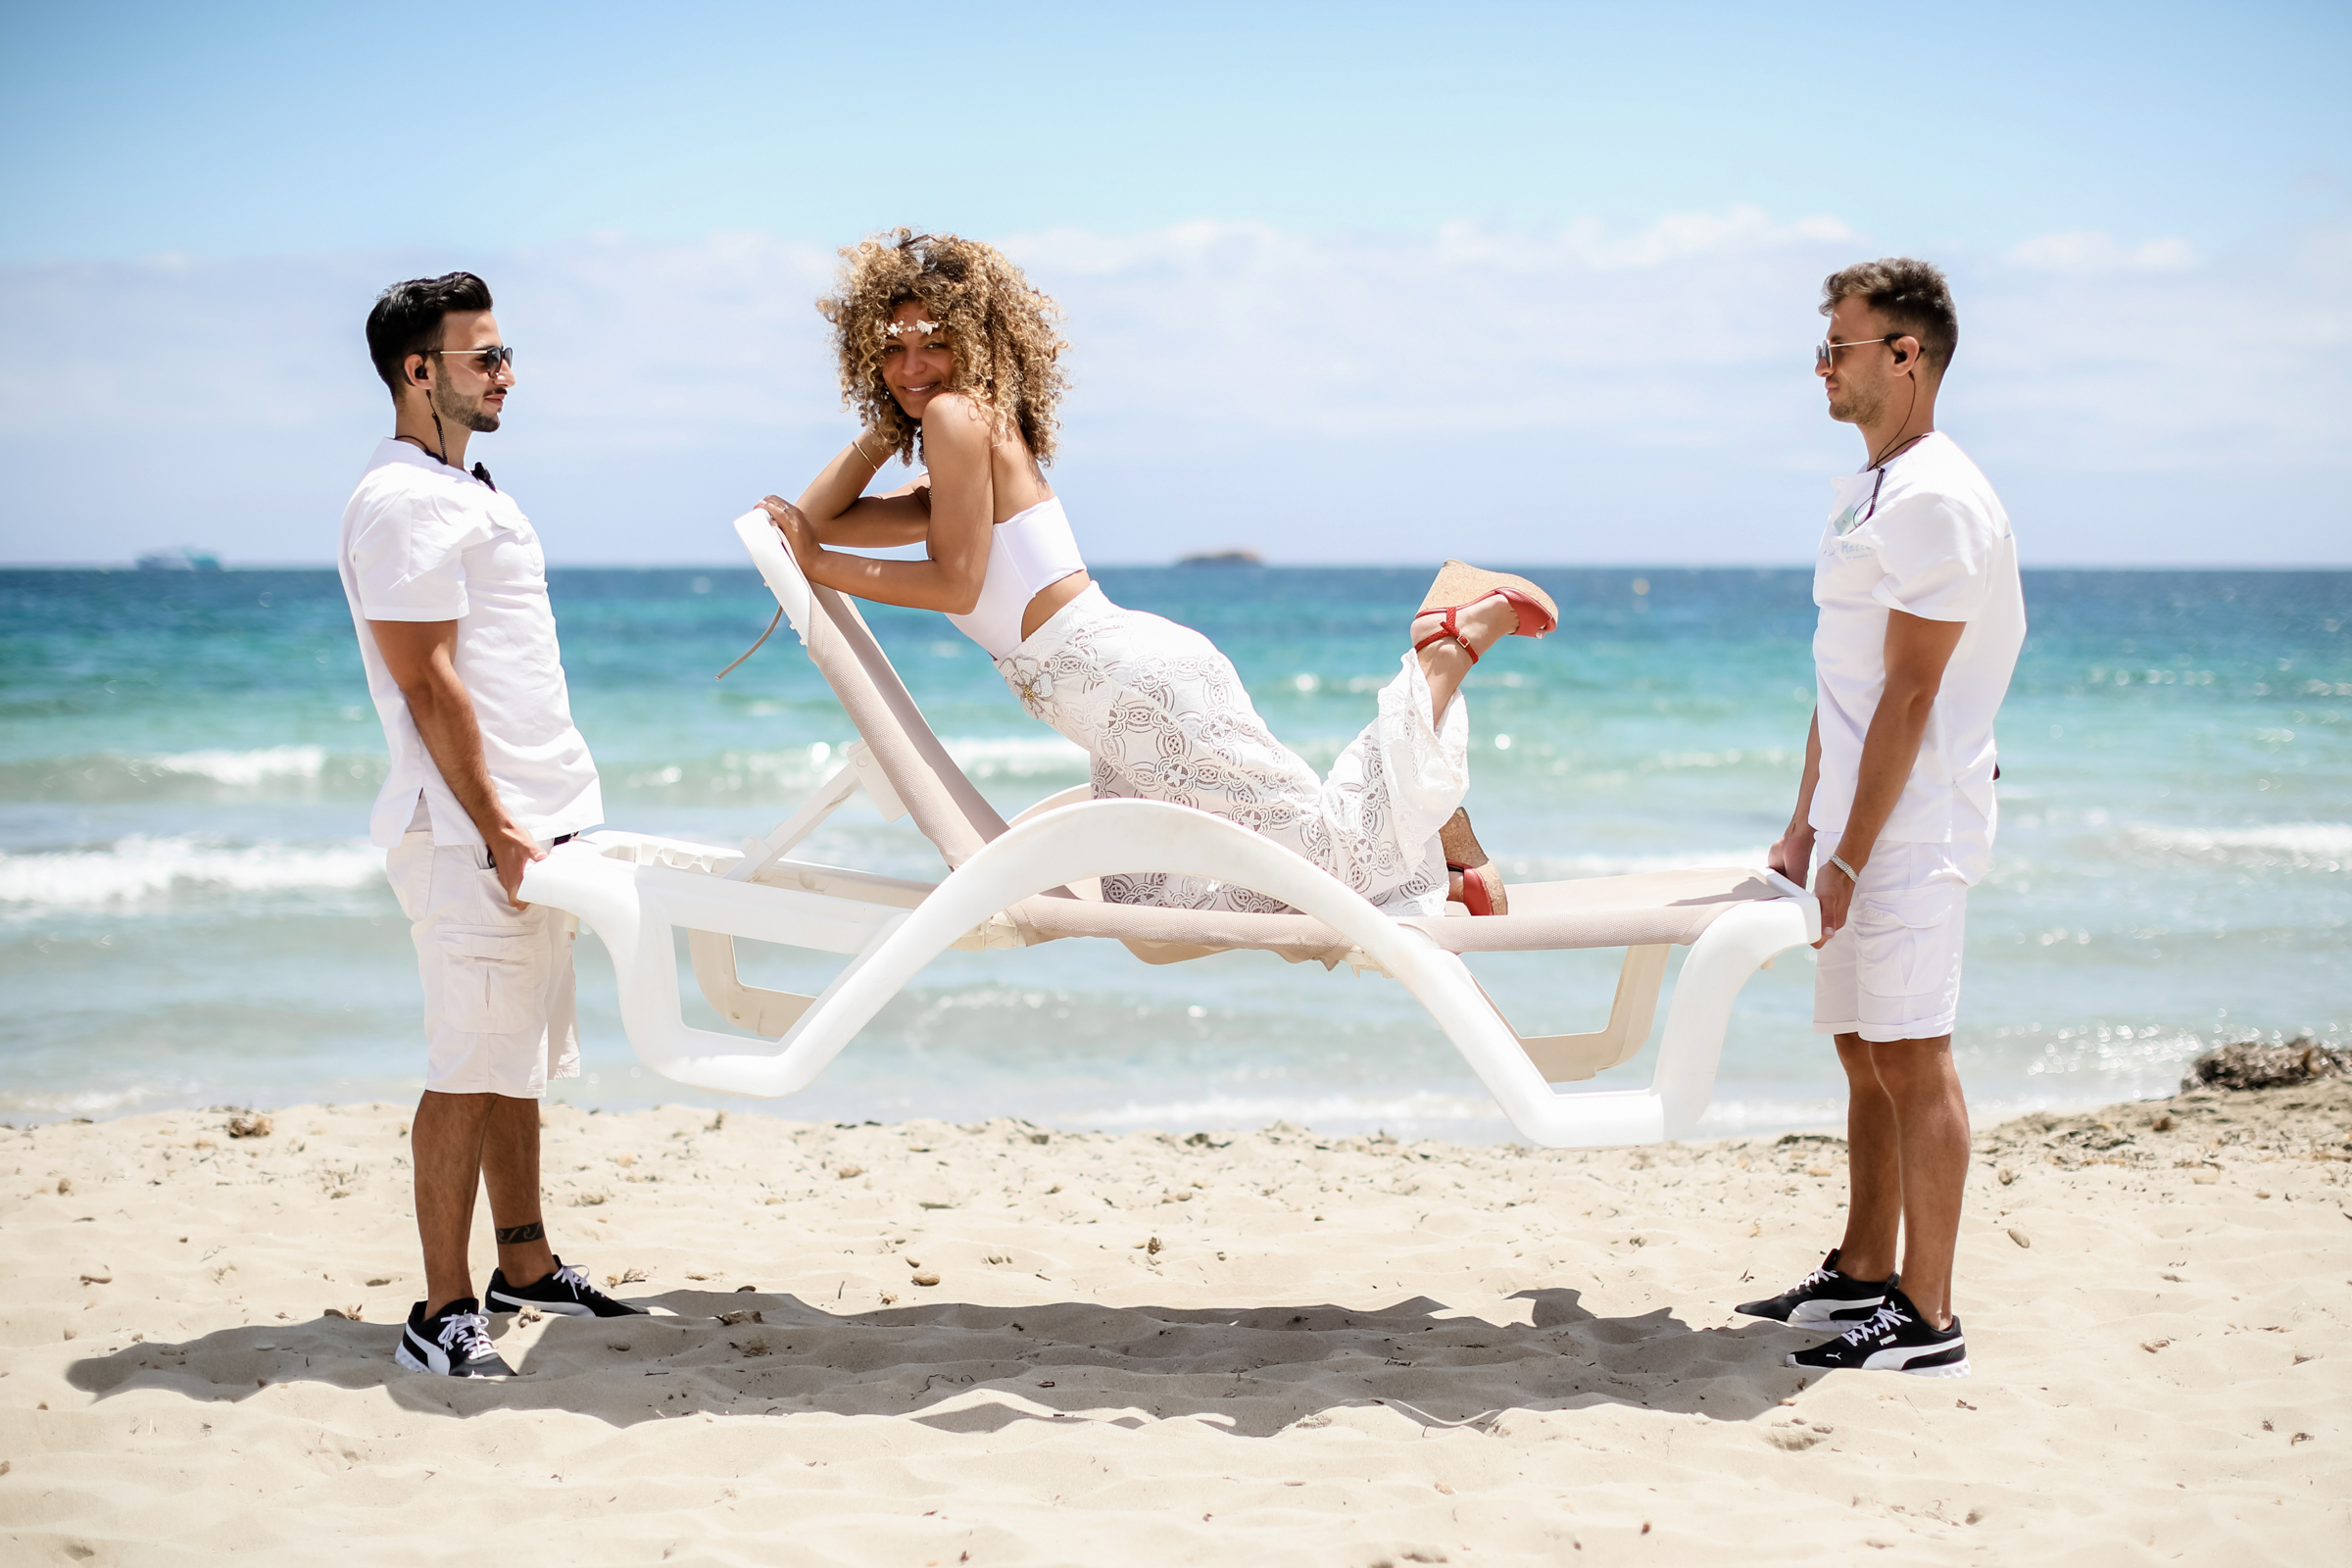 Bride posing on beach chair on Ibiza beach - photo by Julien Laurent Georges